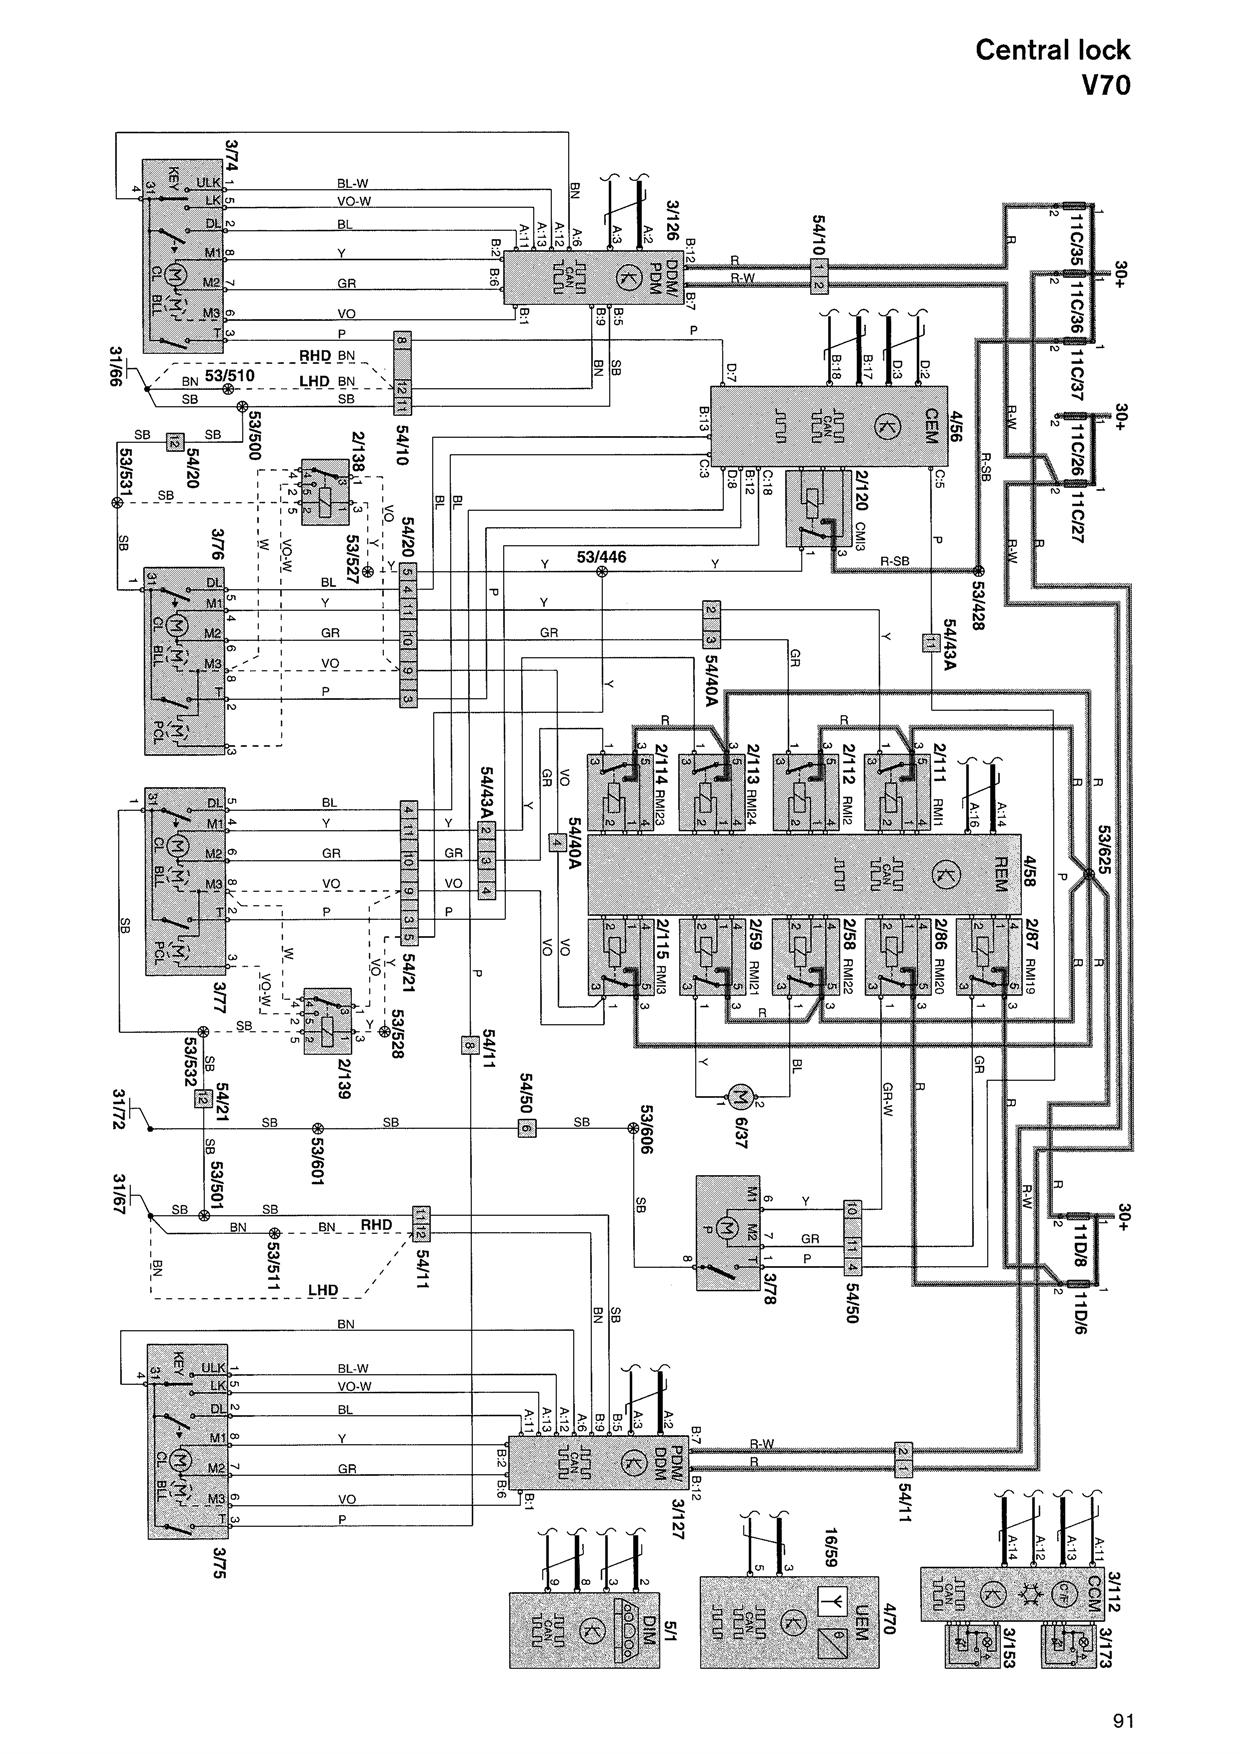 [SCHEMATICS_48IS]  Volvo V70 Electrical Diagram - 02 Explorer Fuse Diagram for Wiring Diagram  Schematics | Volvo V70 Schematics |  | Wiring Diagram Schematics